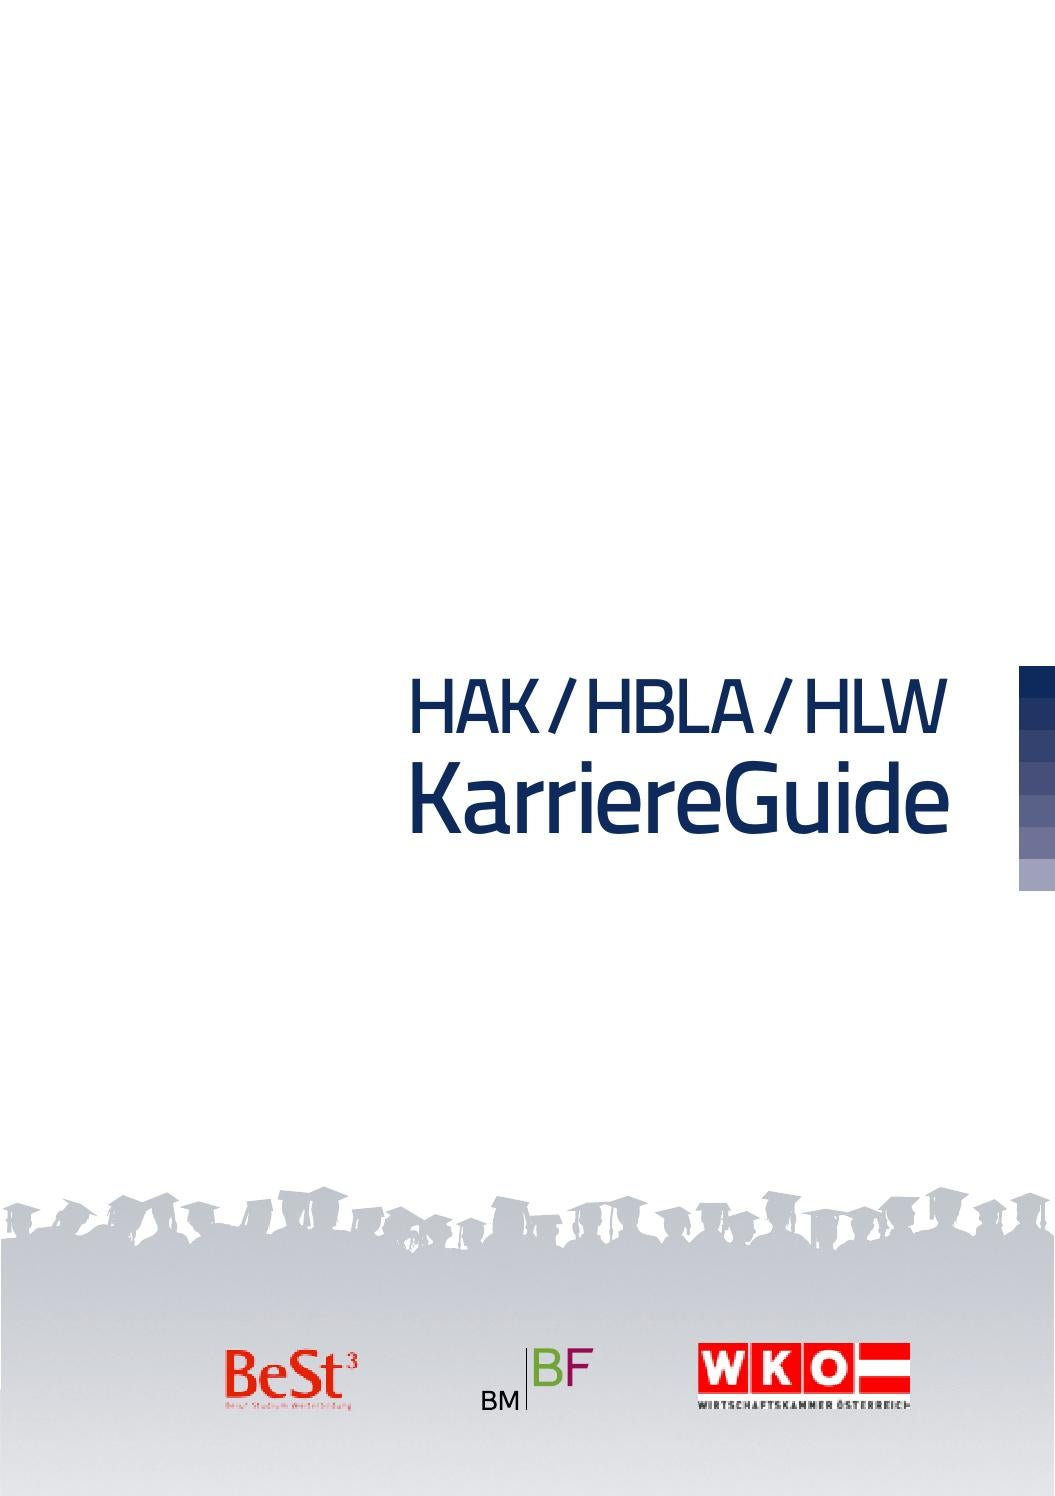 HAK/HBLA/HLW KarriereGuide 2016 by Business Cluster Network GmbH - issuu